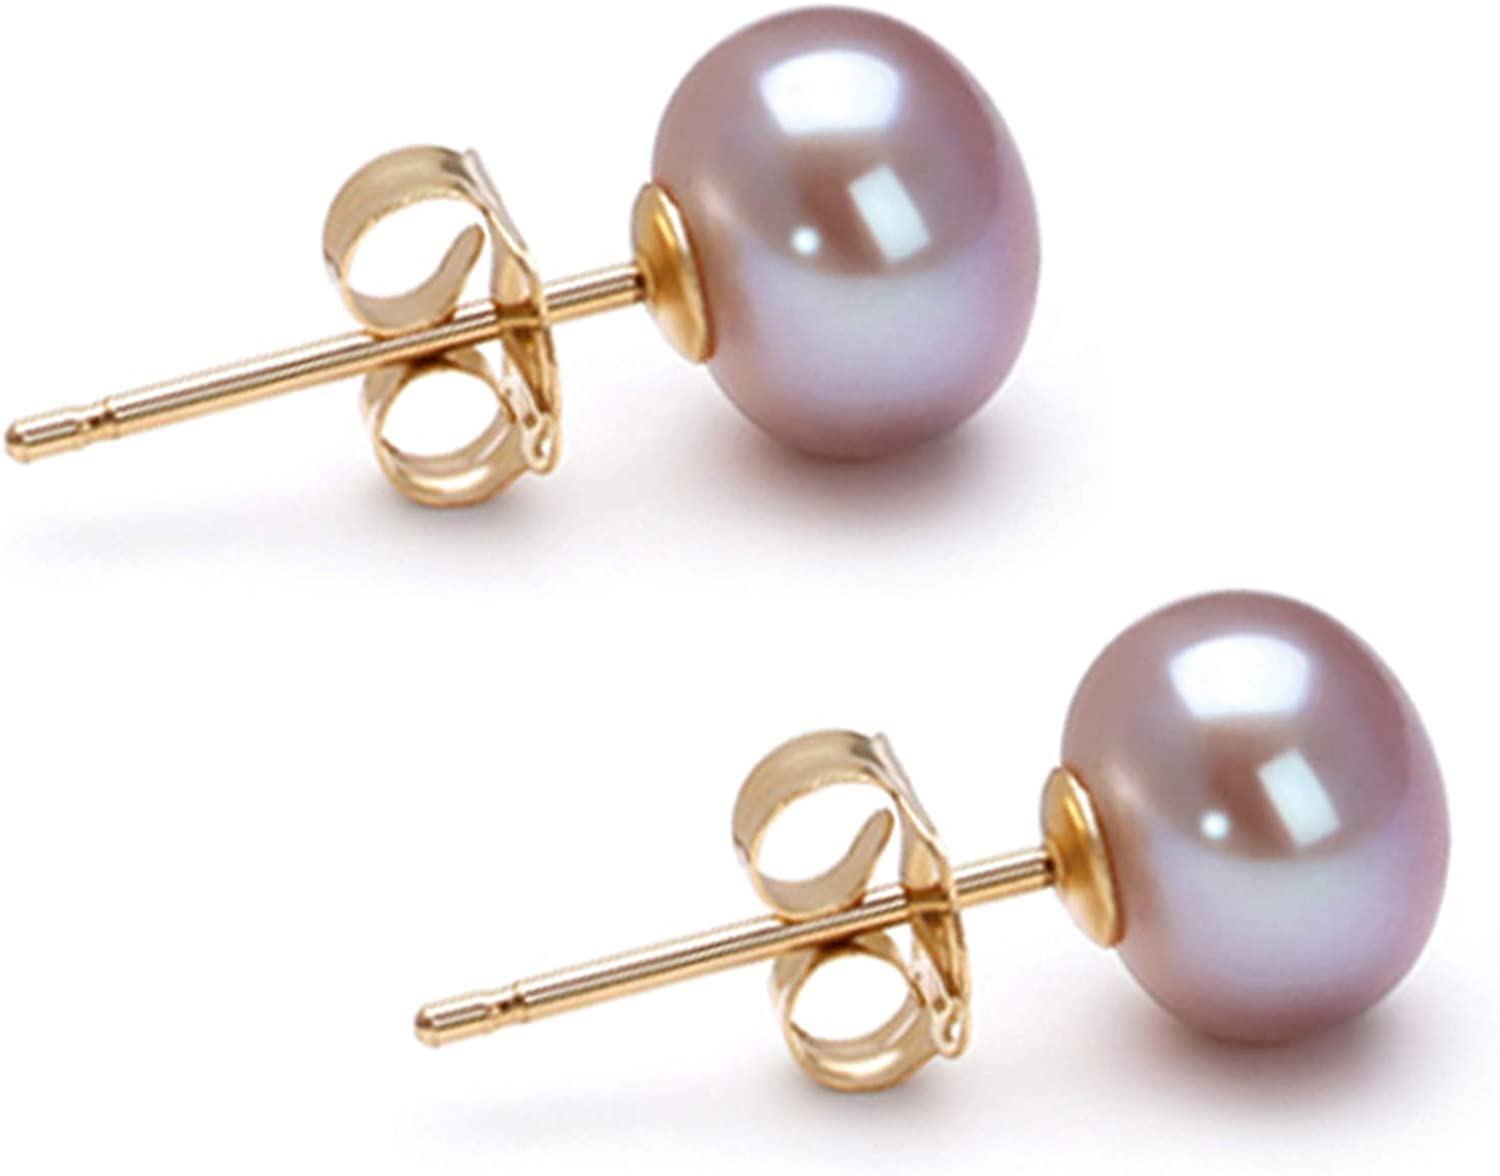 AA 6-10mm Lavender Freshwater Low price Cultured Pearl for Earrings Stud W Tucson Mall